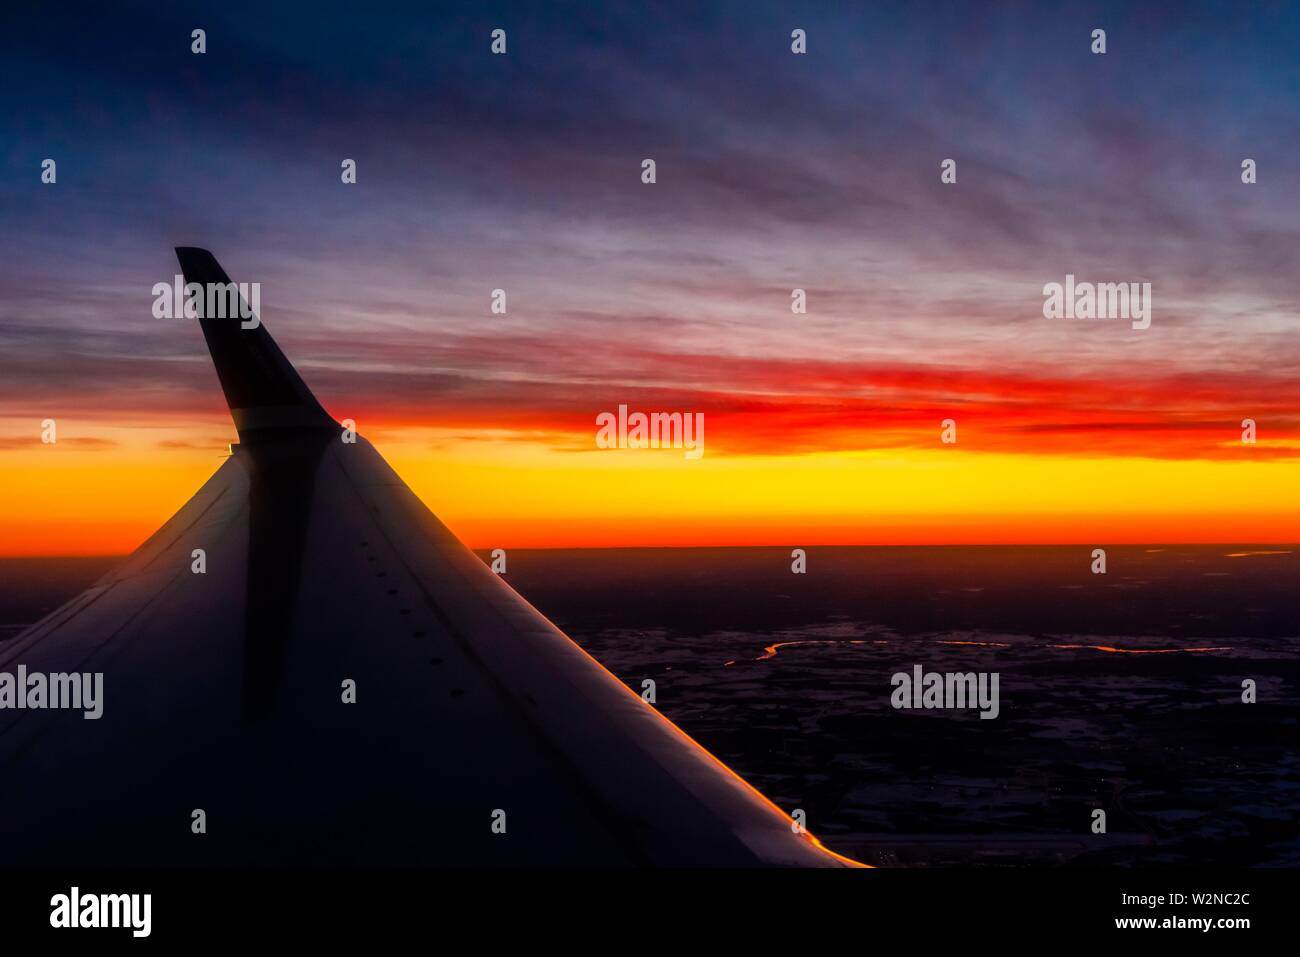 A Norwegian Air Shuttle Boeing 787 Dreamliner after take off predawn from Oslo Gardermoen Airport, Norway. - Stock Image